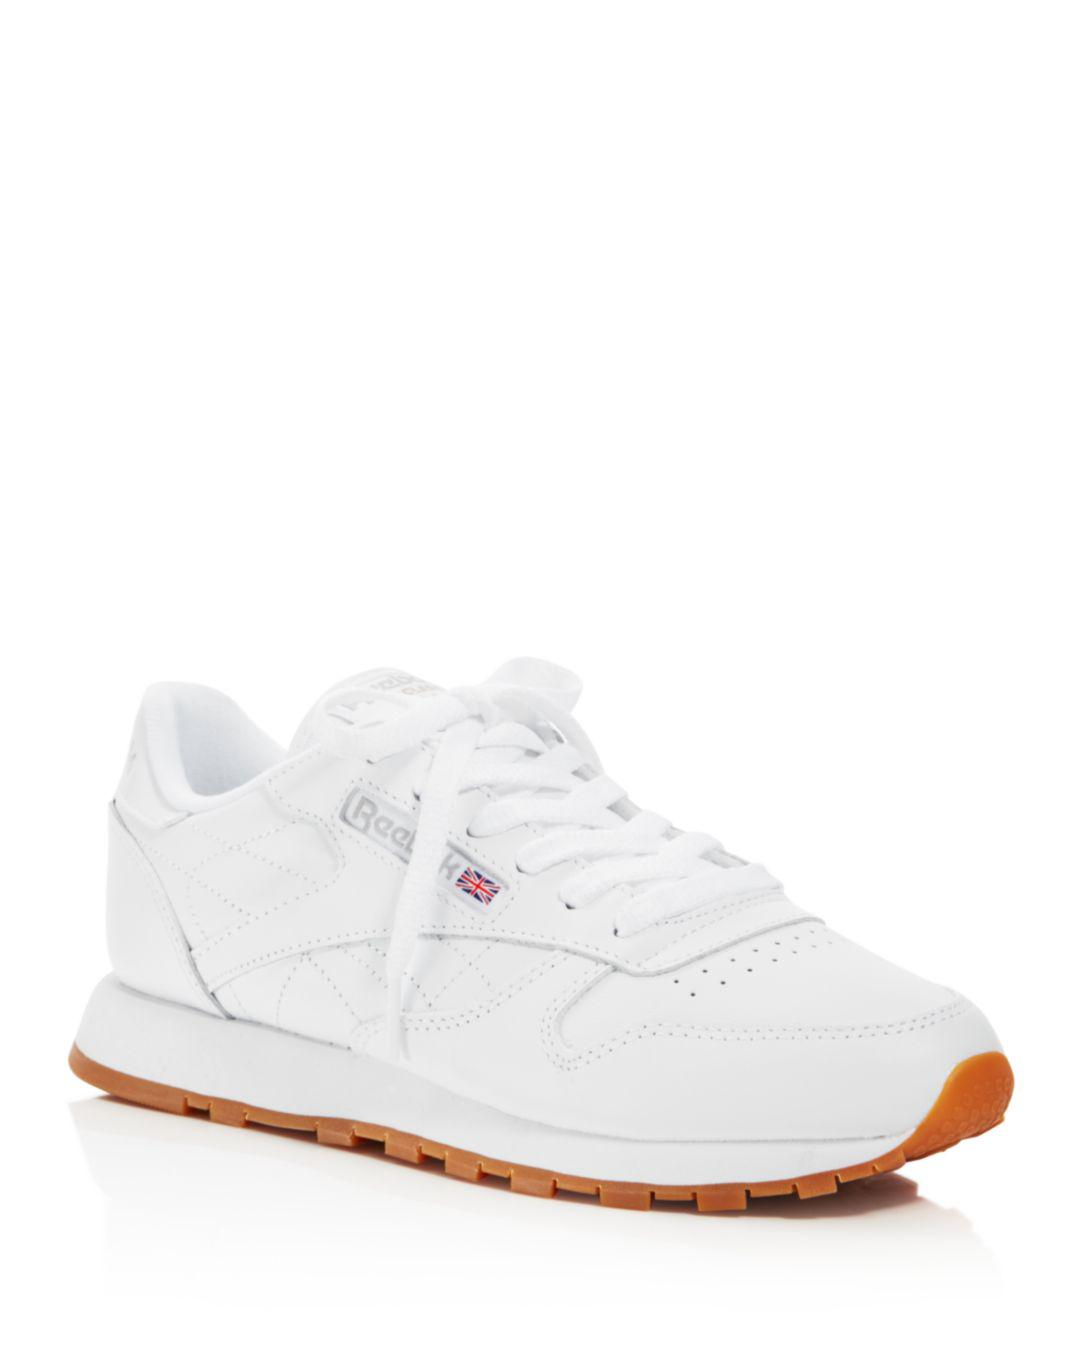 cf1144e63bb3 Lyst - Reebok Women s Classic Leather Lace Up Sneakers in White